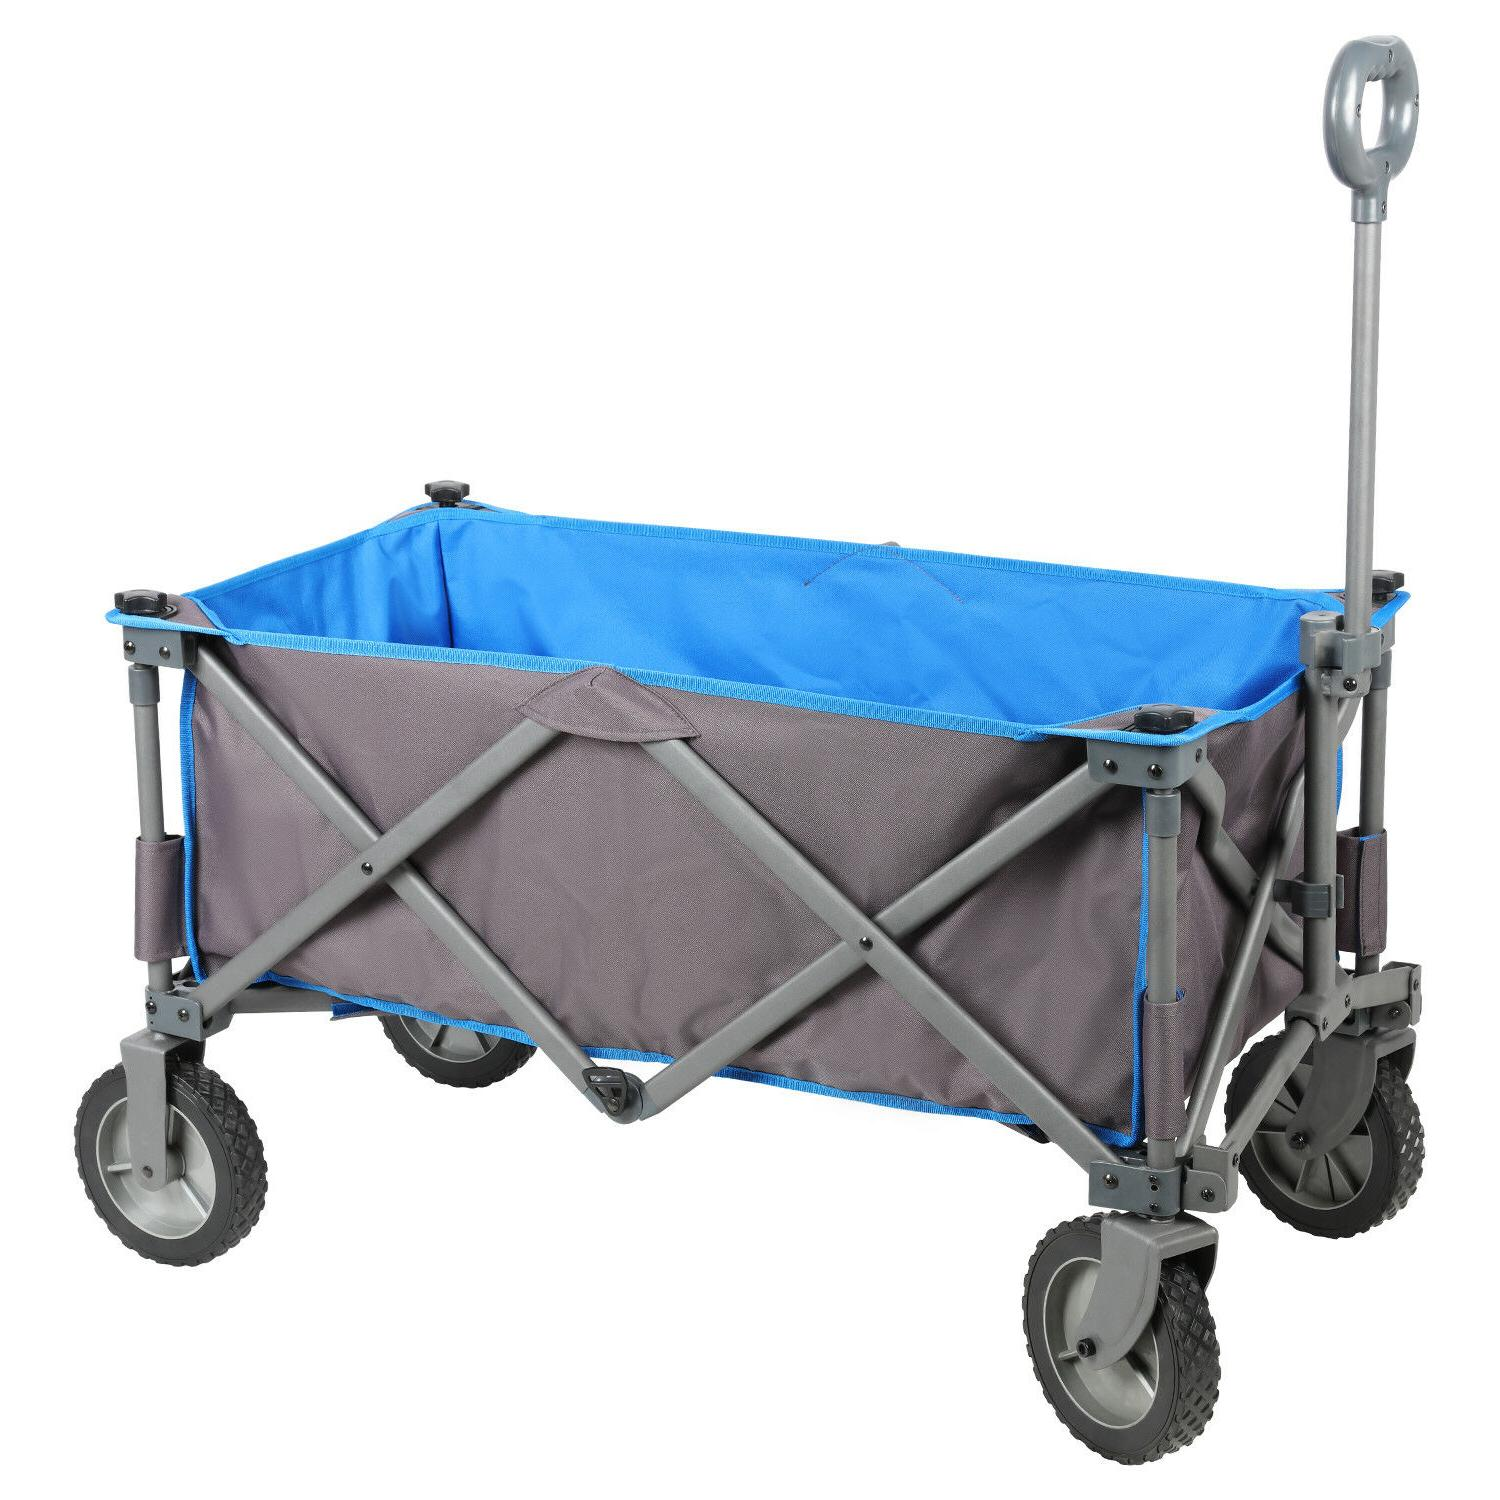 YSC Outdoor Carts Wagon Garden Folding Utility Shopping Cart